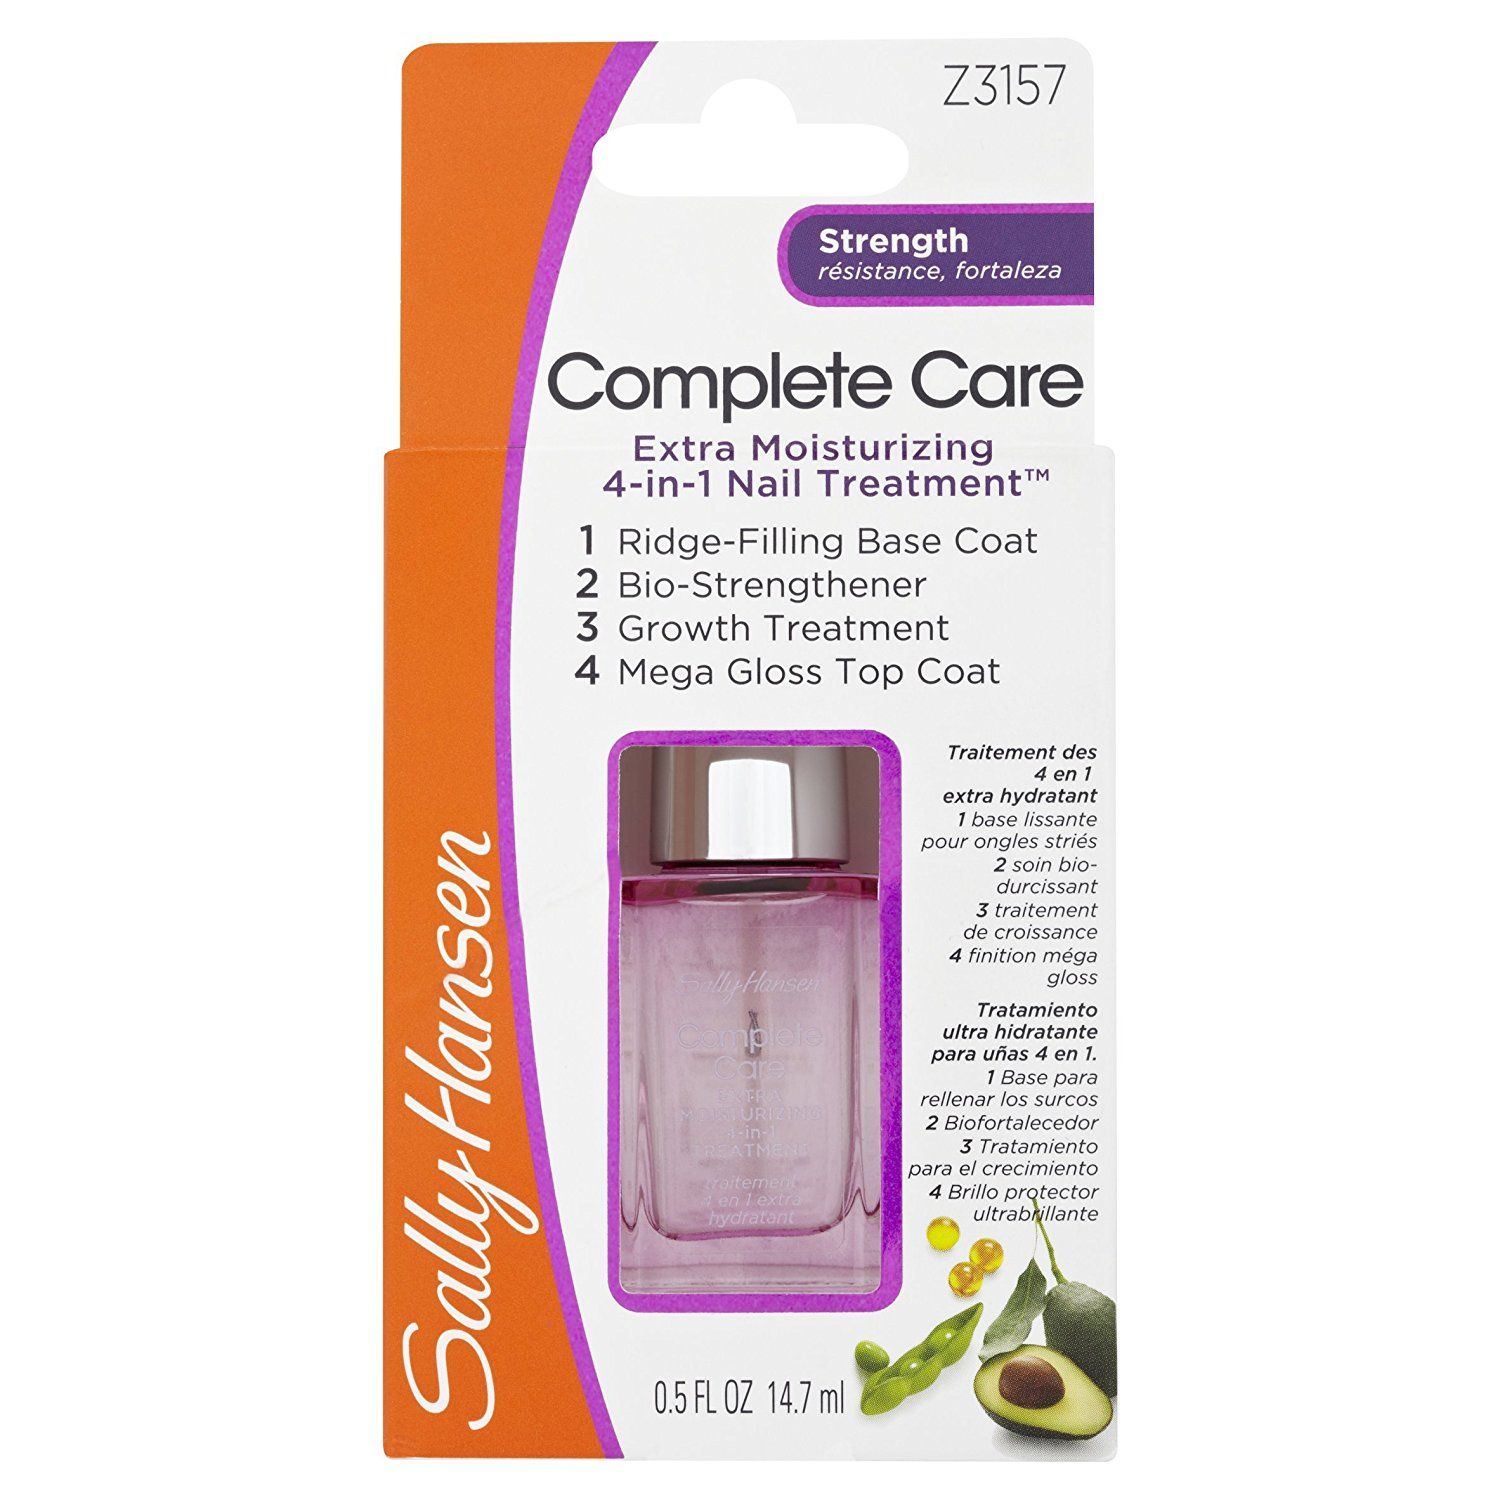 Sally Hansen Complete Care Extra Moisturizing Strength 3157 Clear You Can Get More Details Here Skin Care Sally Hansen Sally Beauty Supply Care